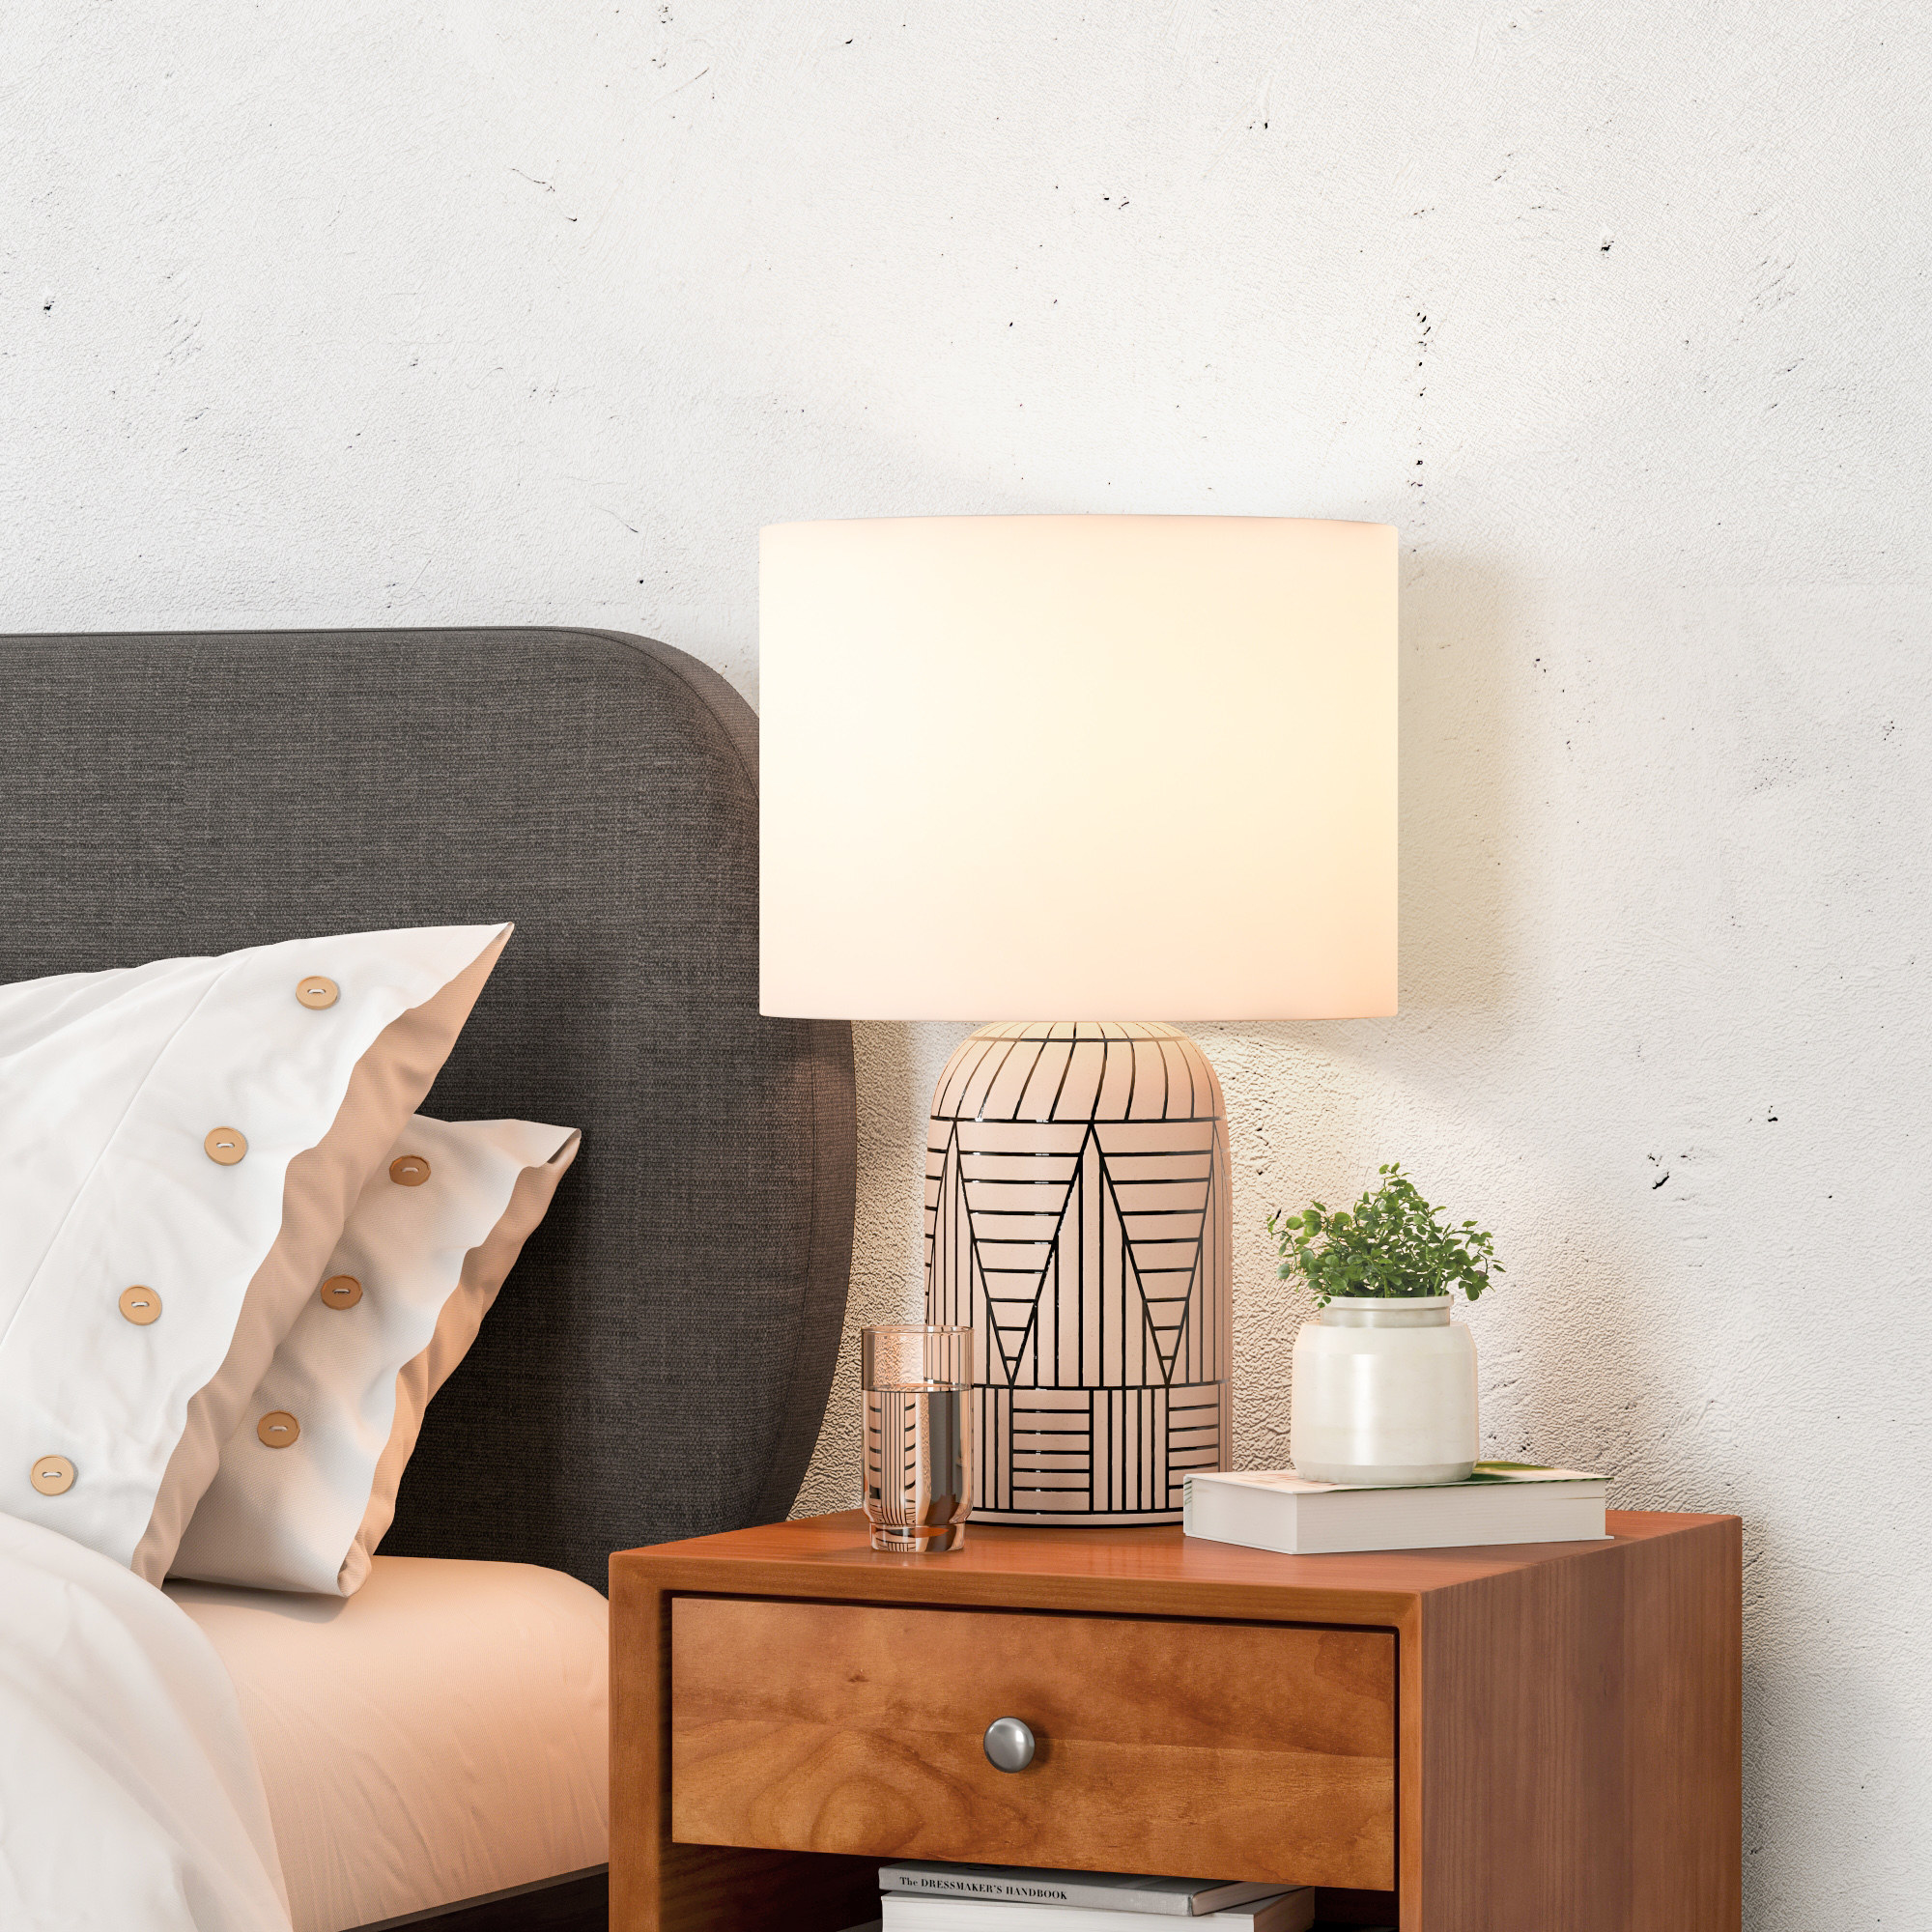 A beige ceramic table lamp with a black line pattern and a white shade